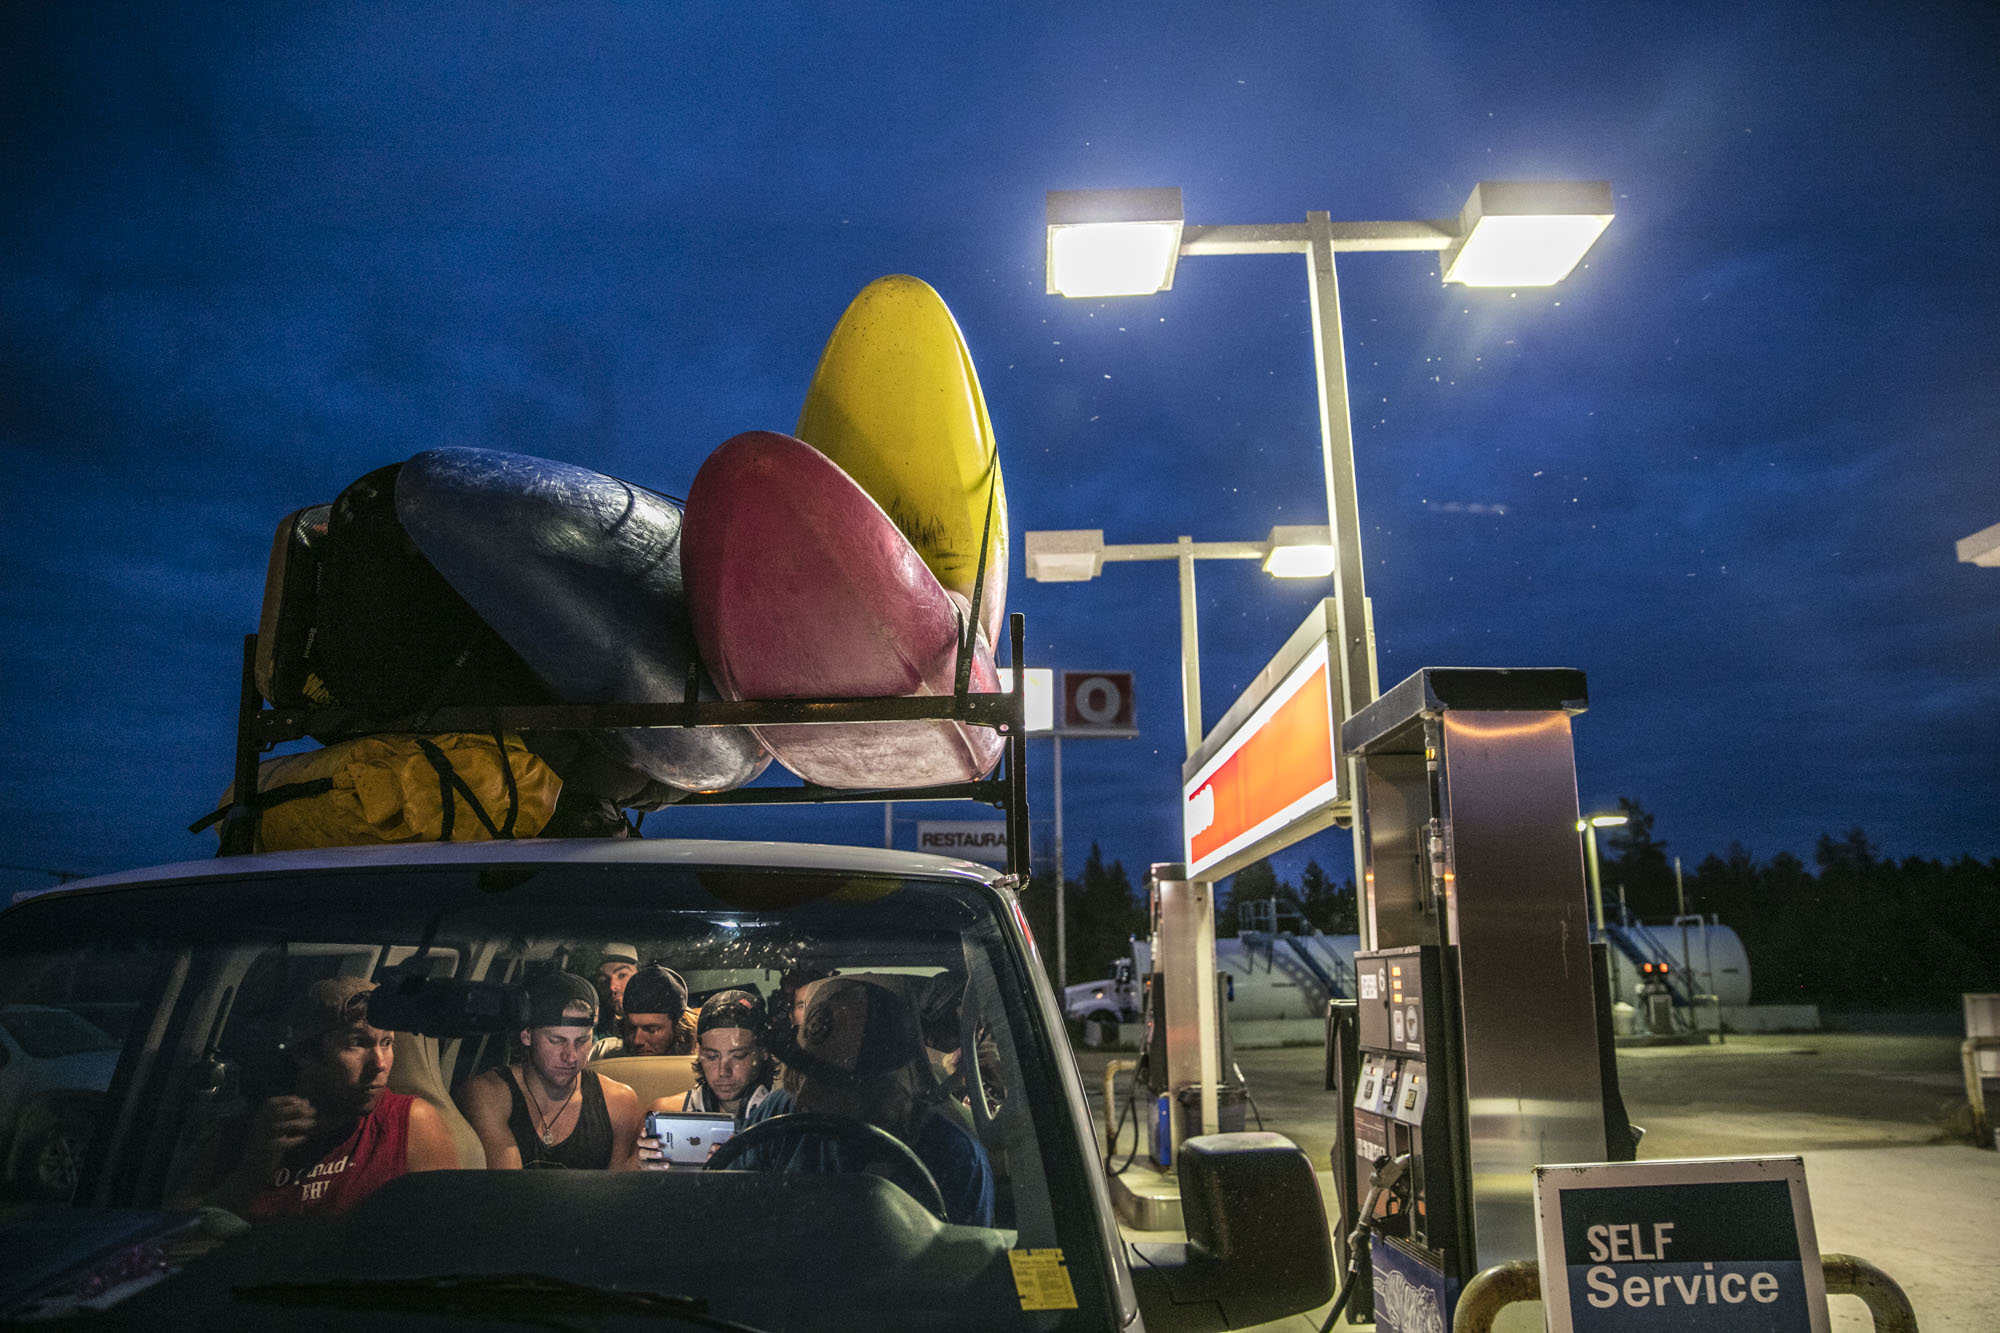 With kayaks on the roof and raft trailer in tow, the team , comprised of elite expedition and freestyle kayakers, drives 3,000 km to reach Manitoba's Nelson River.  